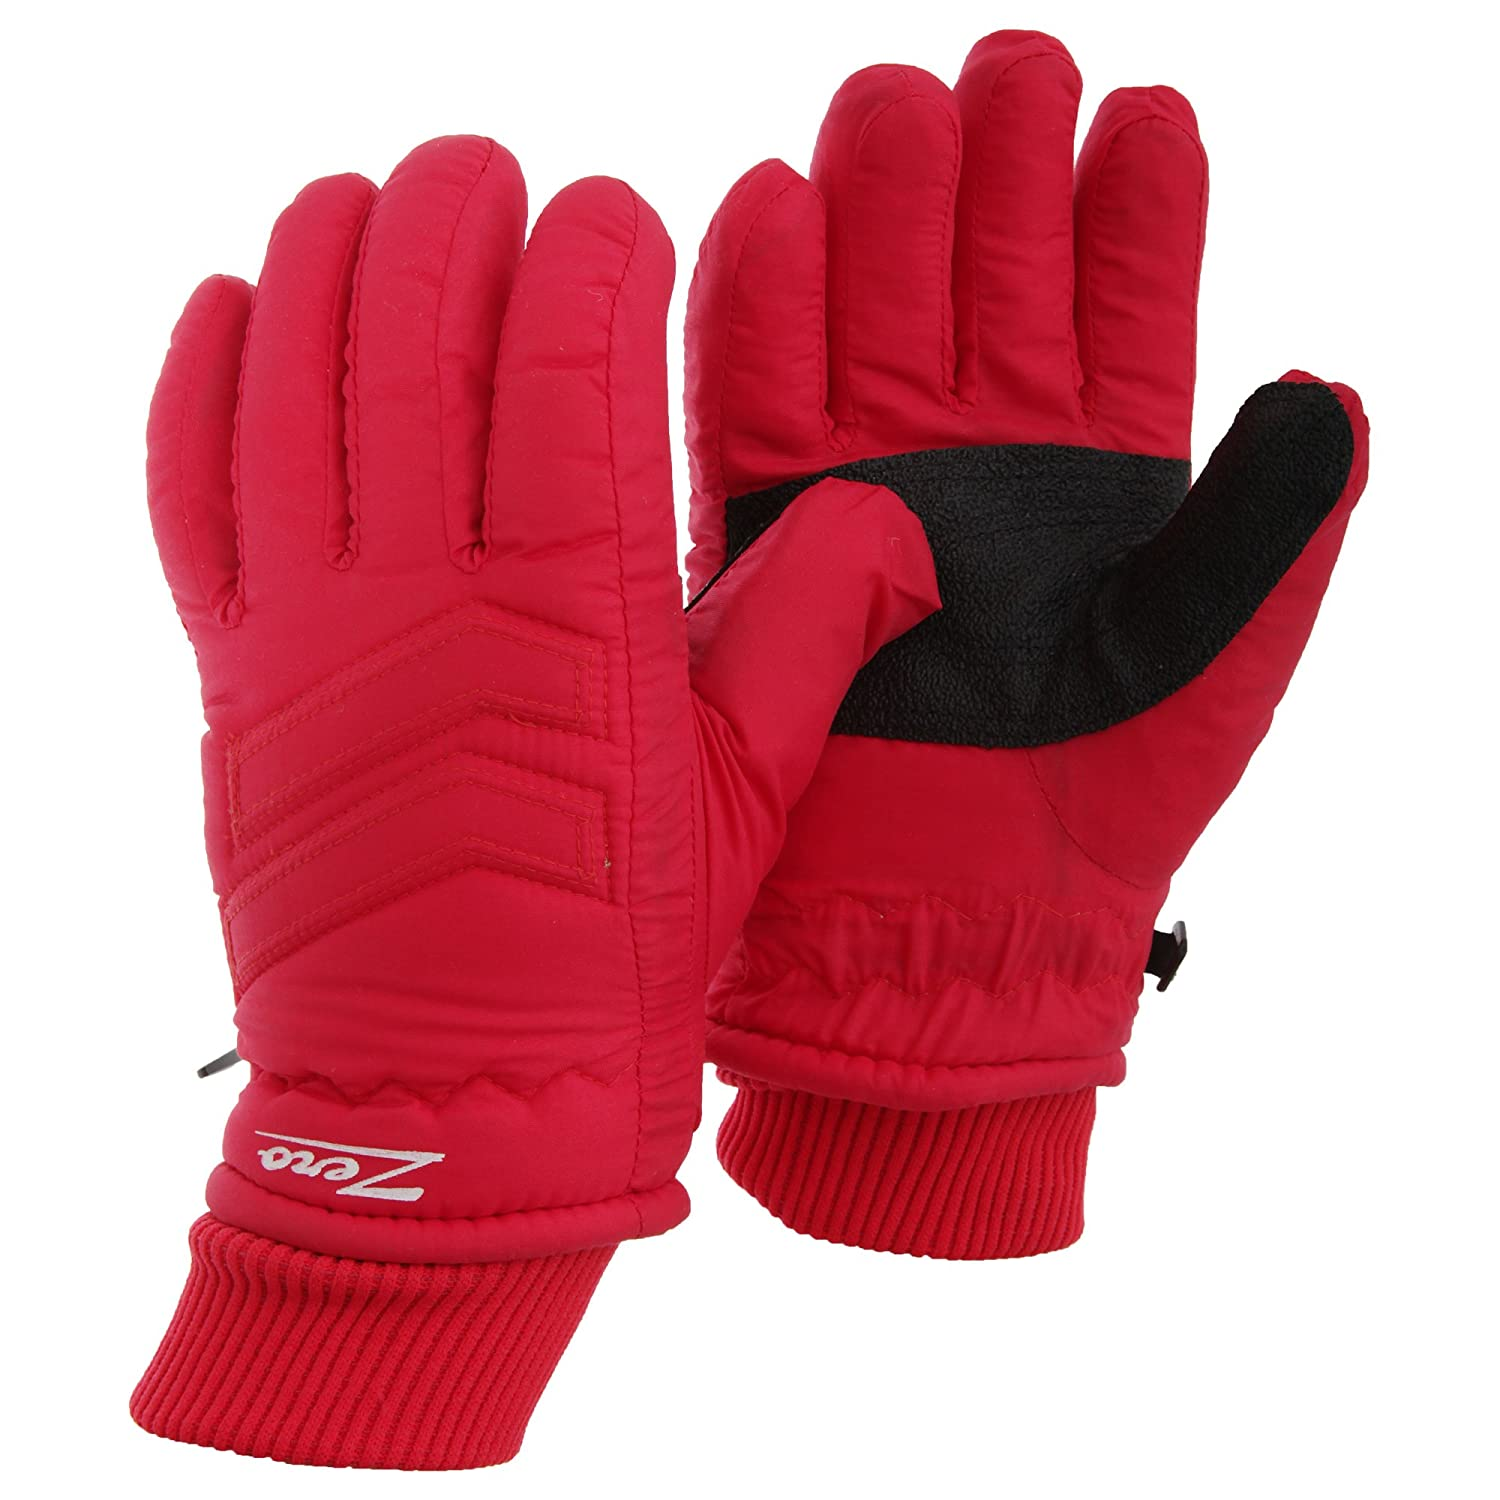 Childrens/Kids Zero Waterproof Hollofil Ski Gloves With Palm Grip (Medium) (Red) Universal Textiles UTGL538_1